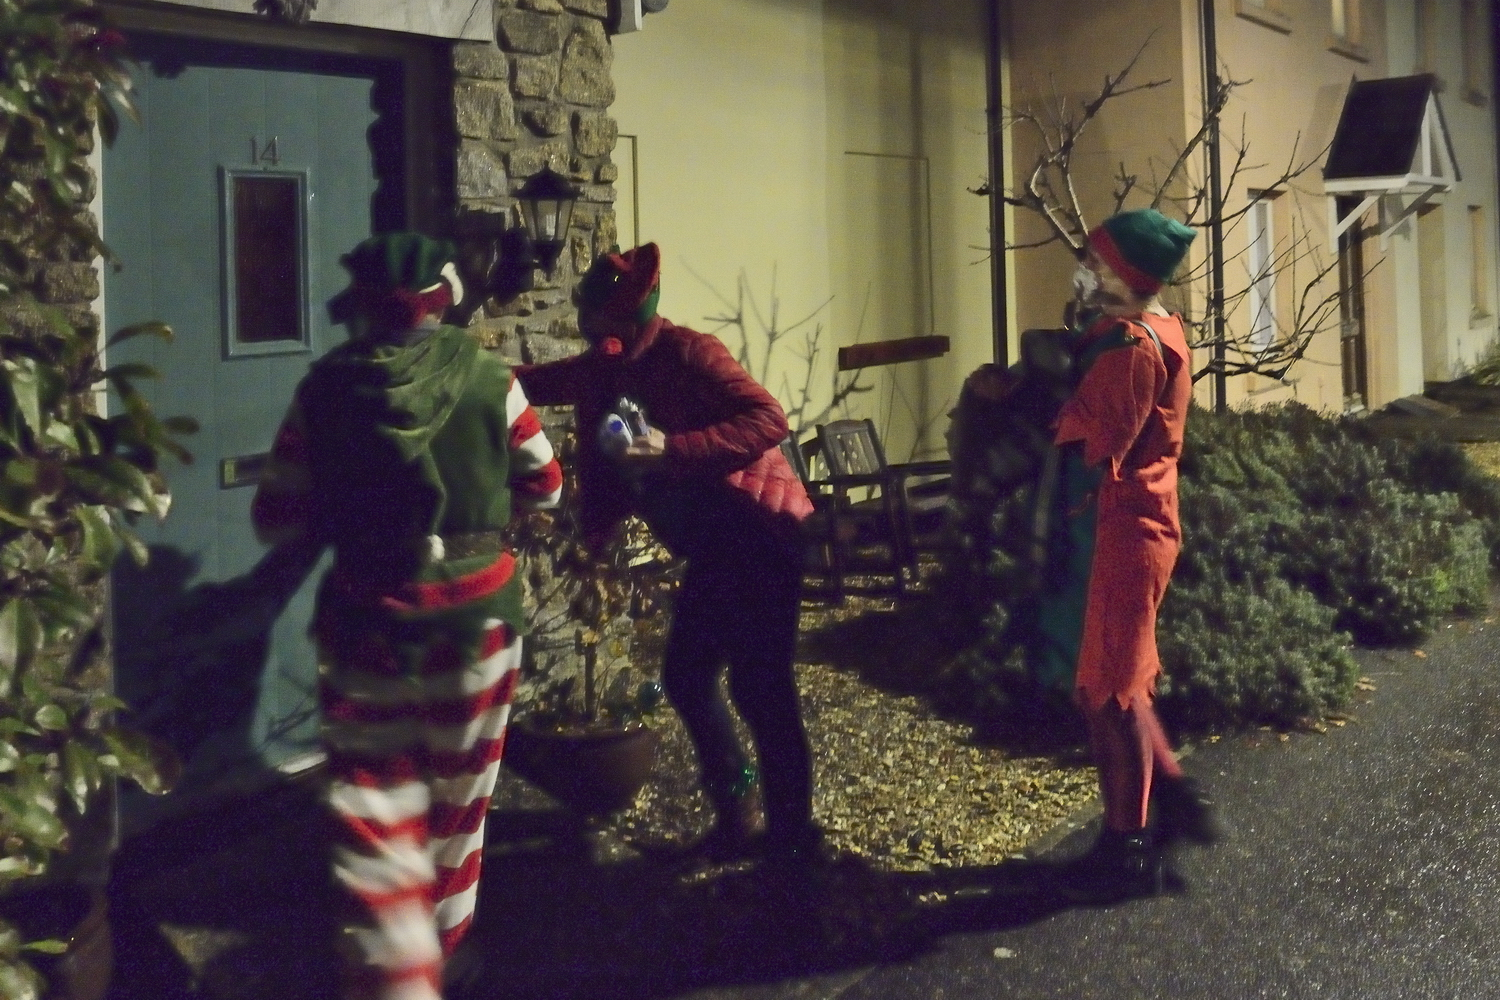 Elves knocking at door